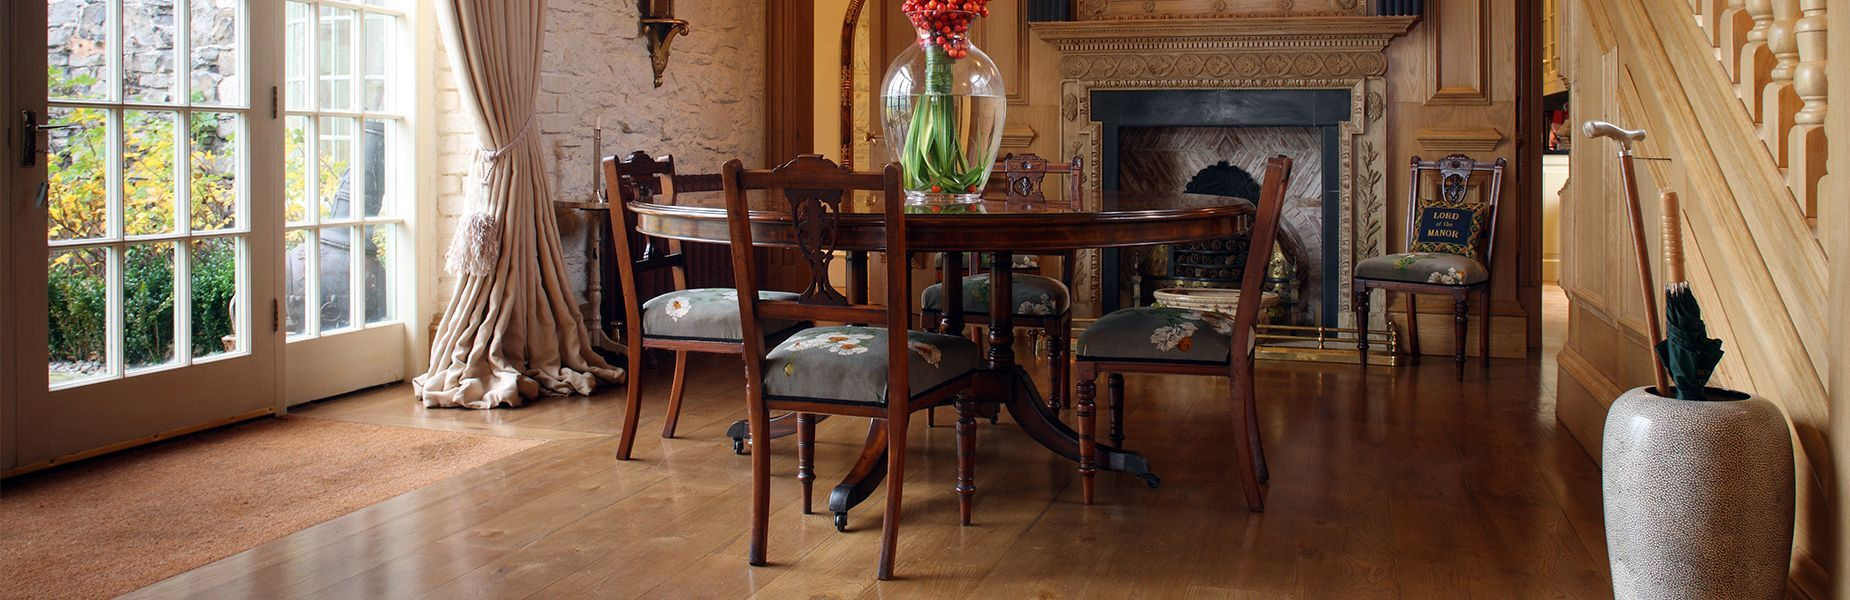 Luxury wood flooring dining room